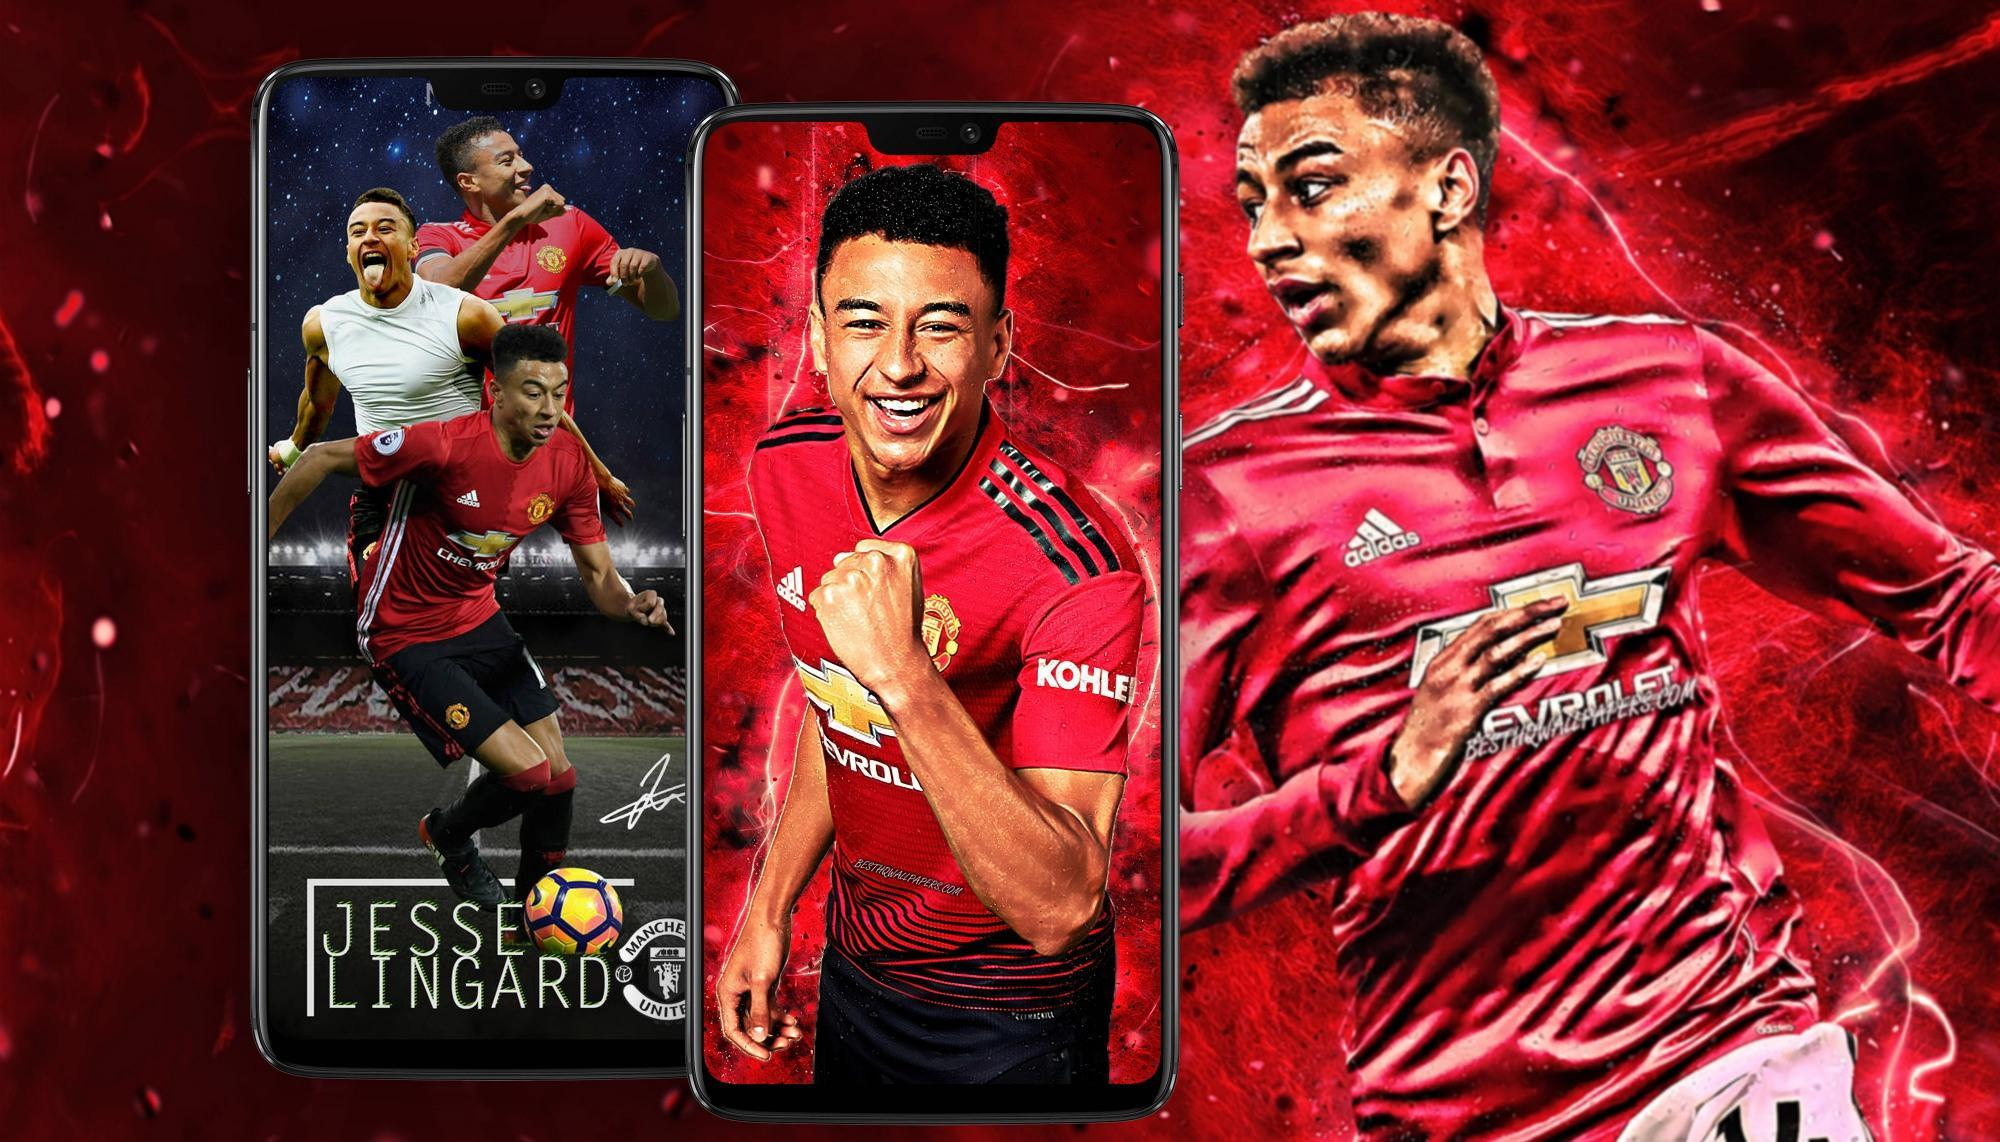 Jesse Lingard Wallpaper Best Hd For Android Apk Download